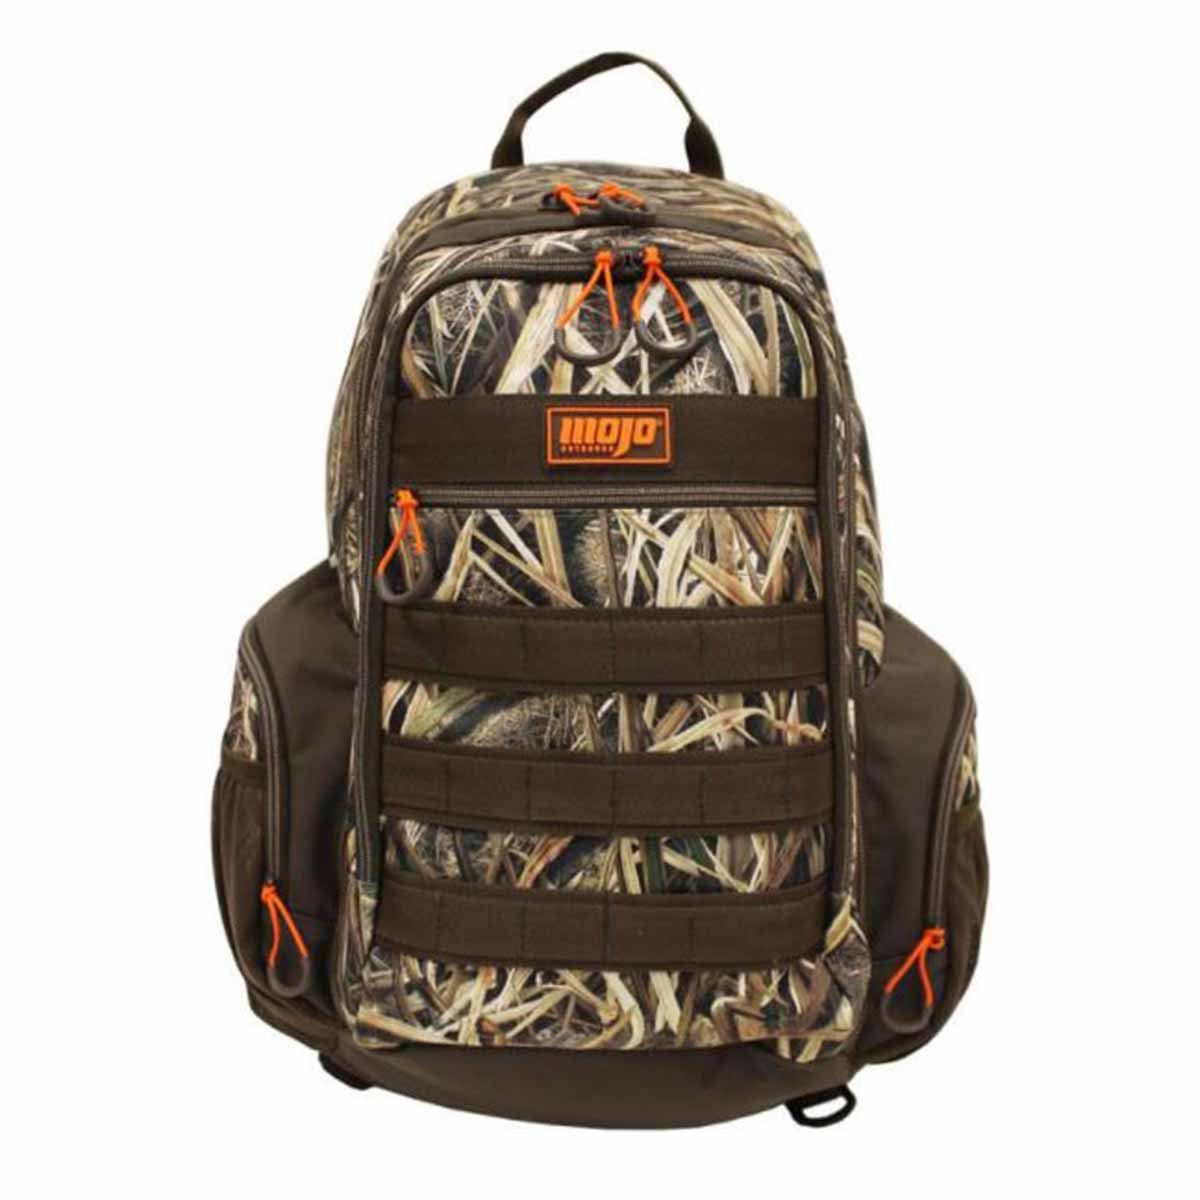 Mojo Single Decoy Bag, Mossy Oak Blades_1.jpg